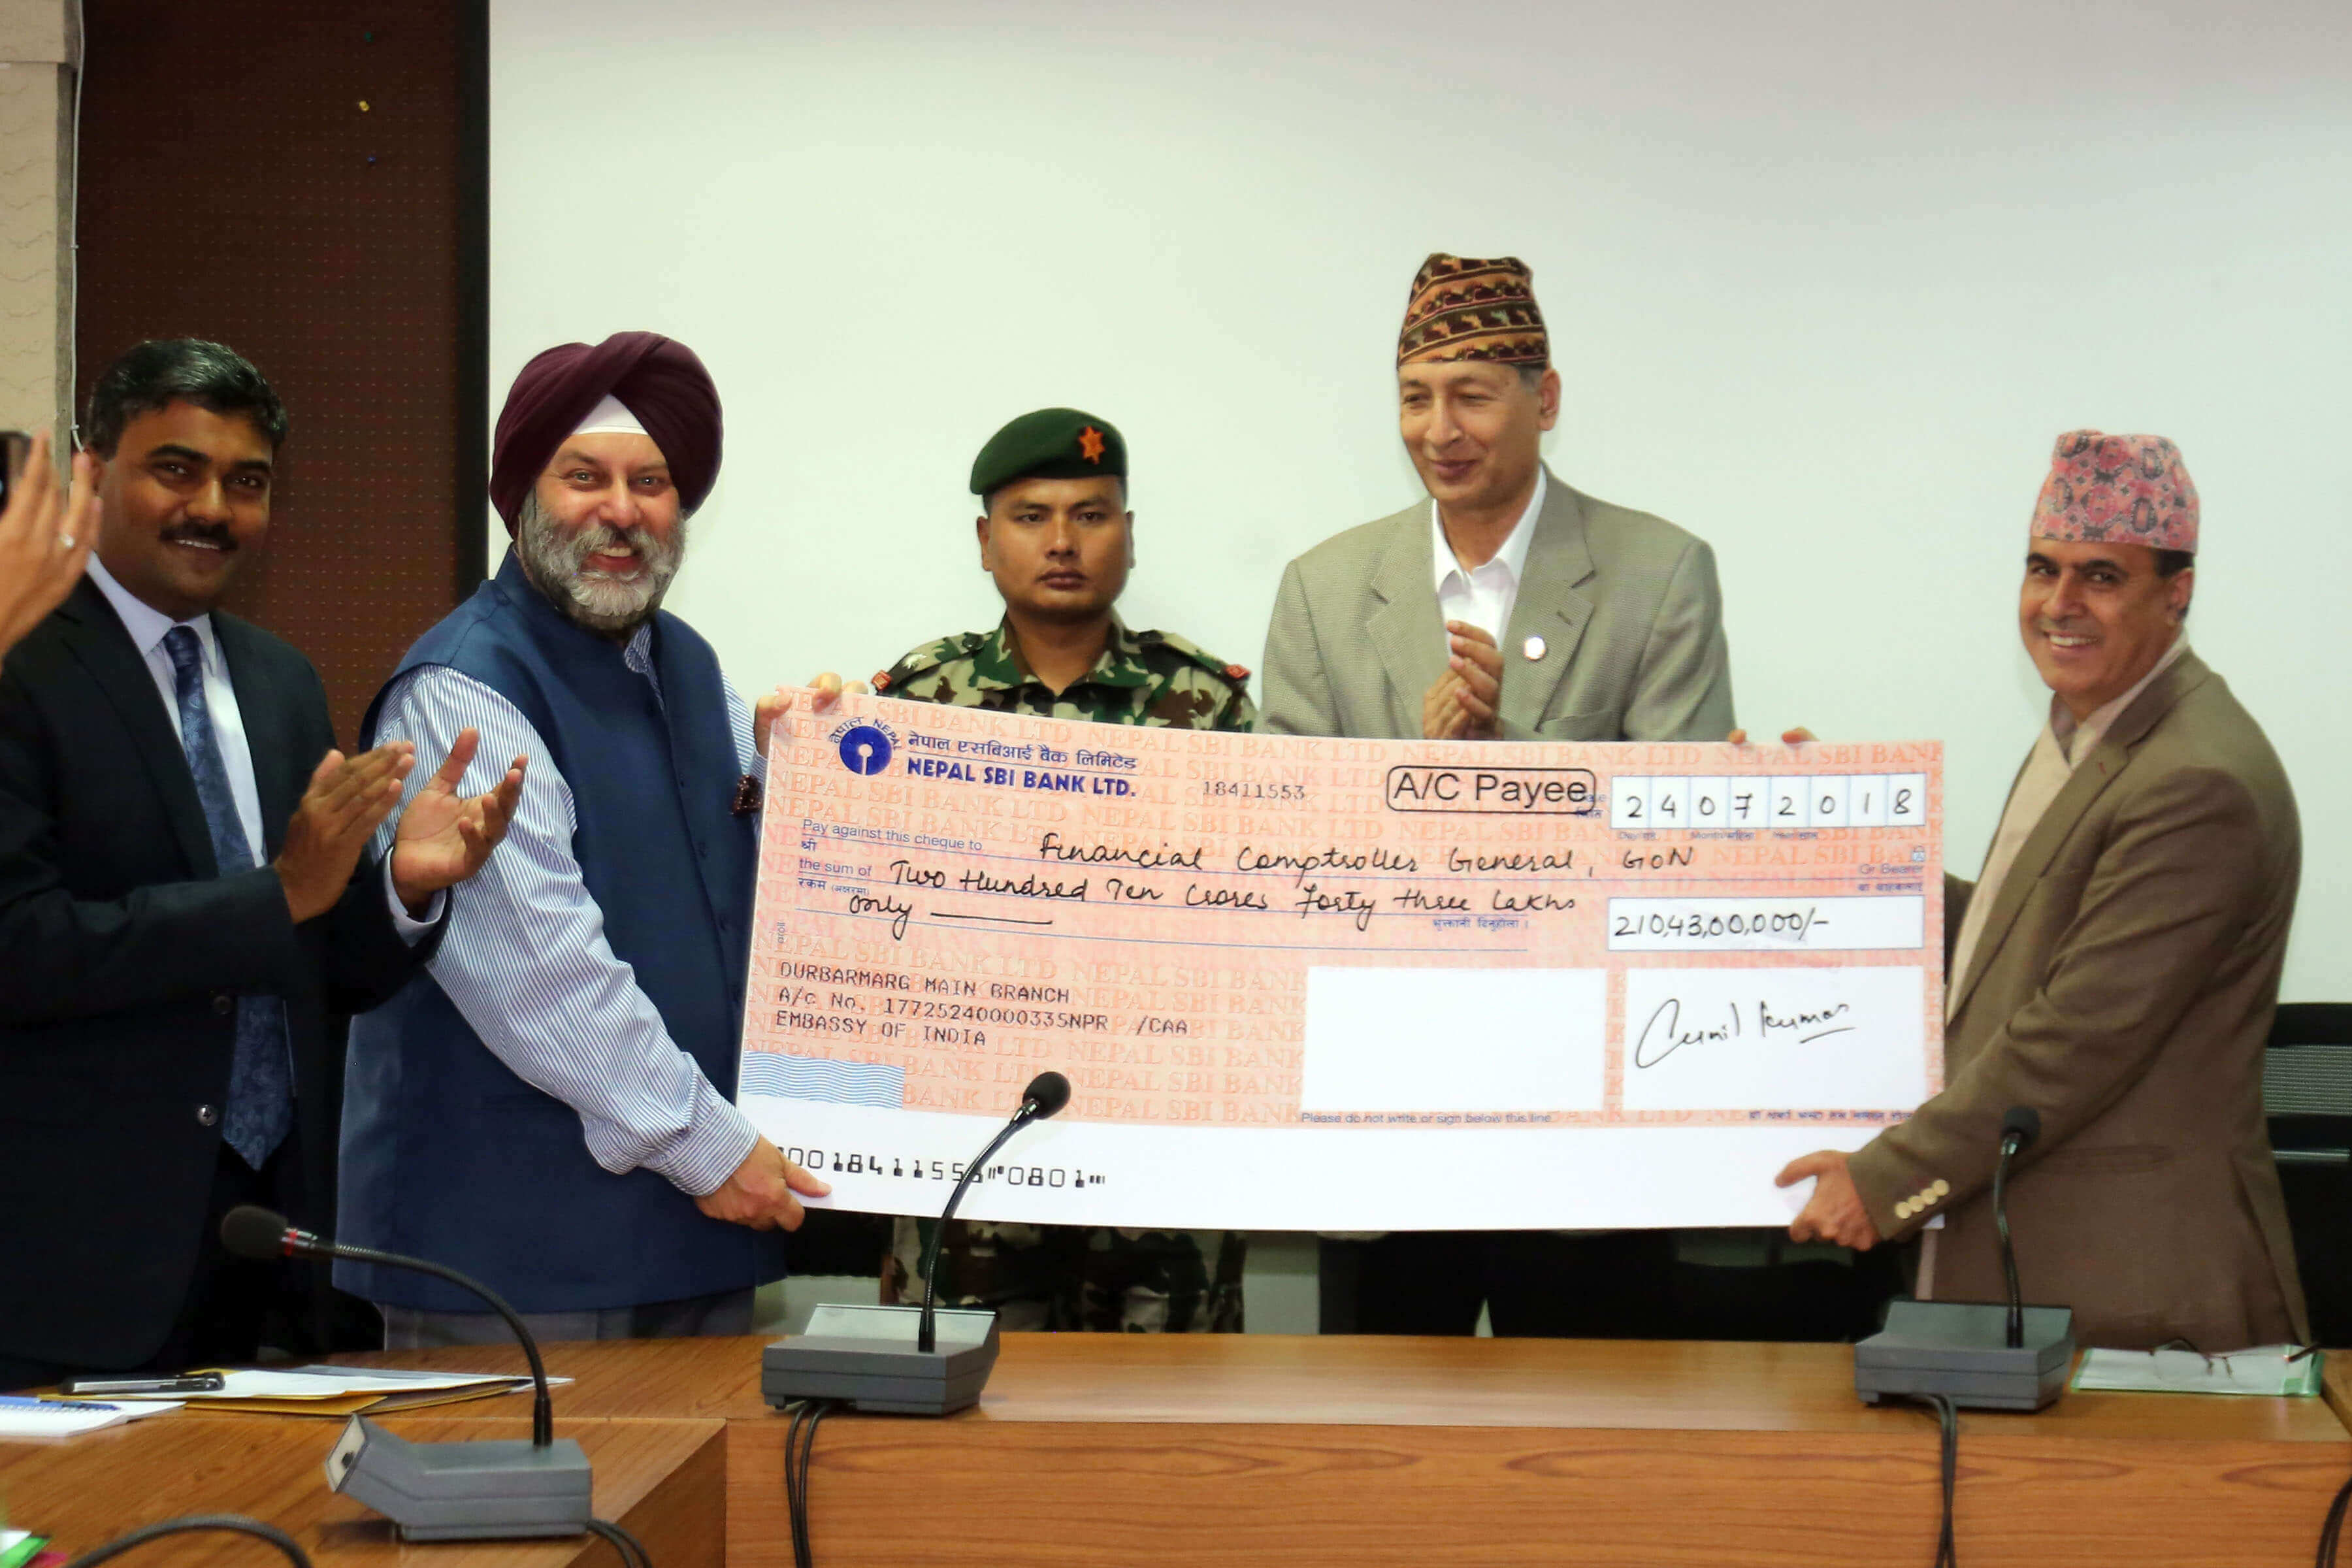 India provides earthquake reconstruction aid